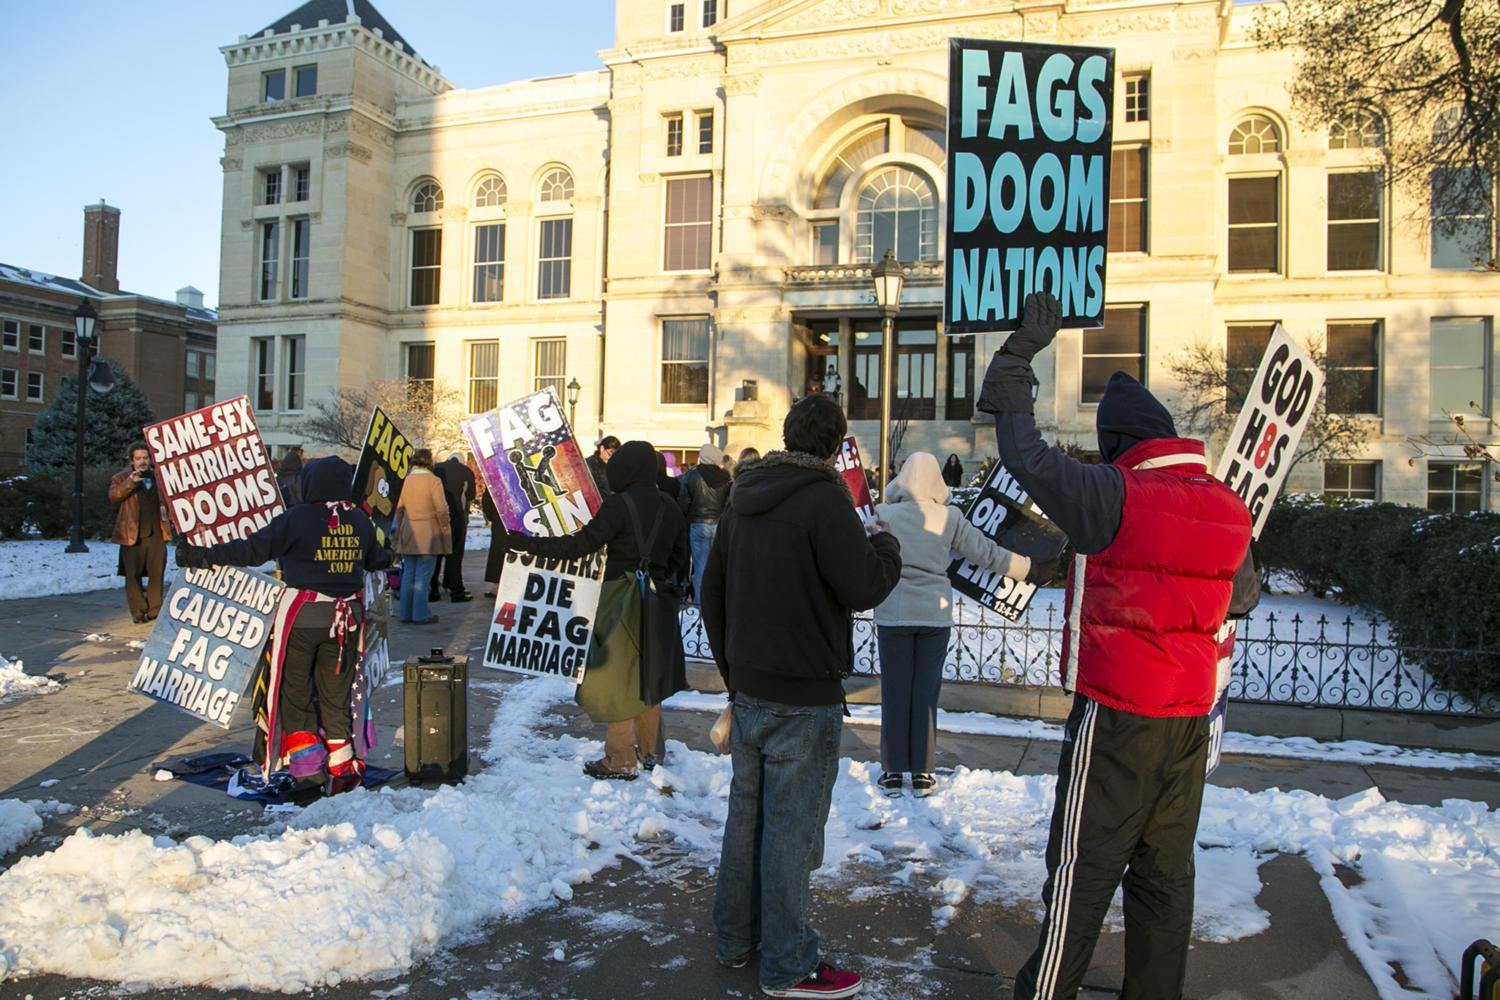 Protesters from Westboro Baptist Church picket a same-sex marriage ceremony in 2014 on the steps of the County Courthouse in Wichita, Kansas. (Mike Hutmacher/Wichita Eagle/TNS)